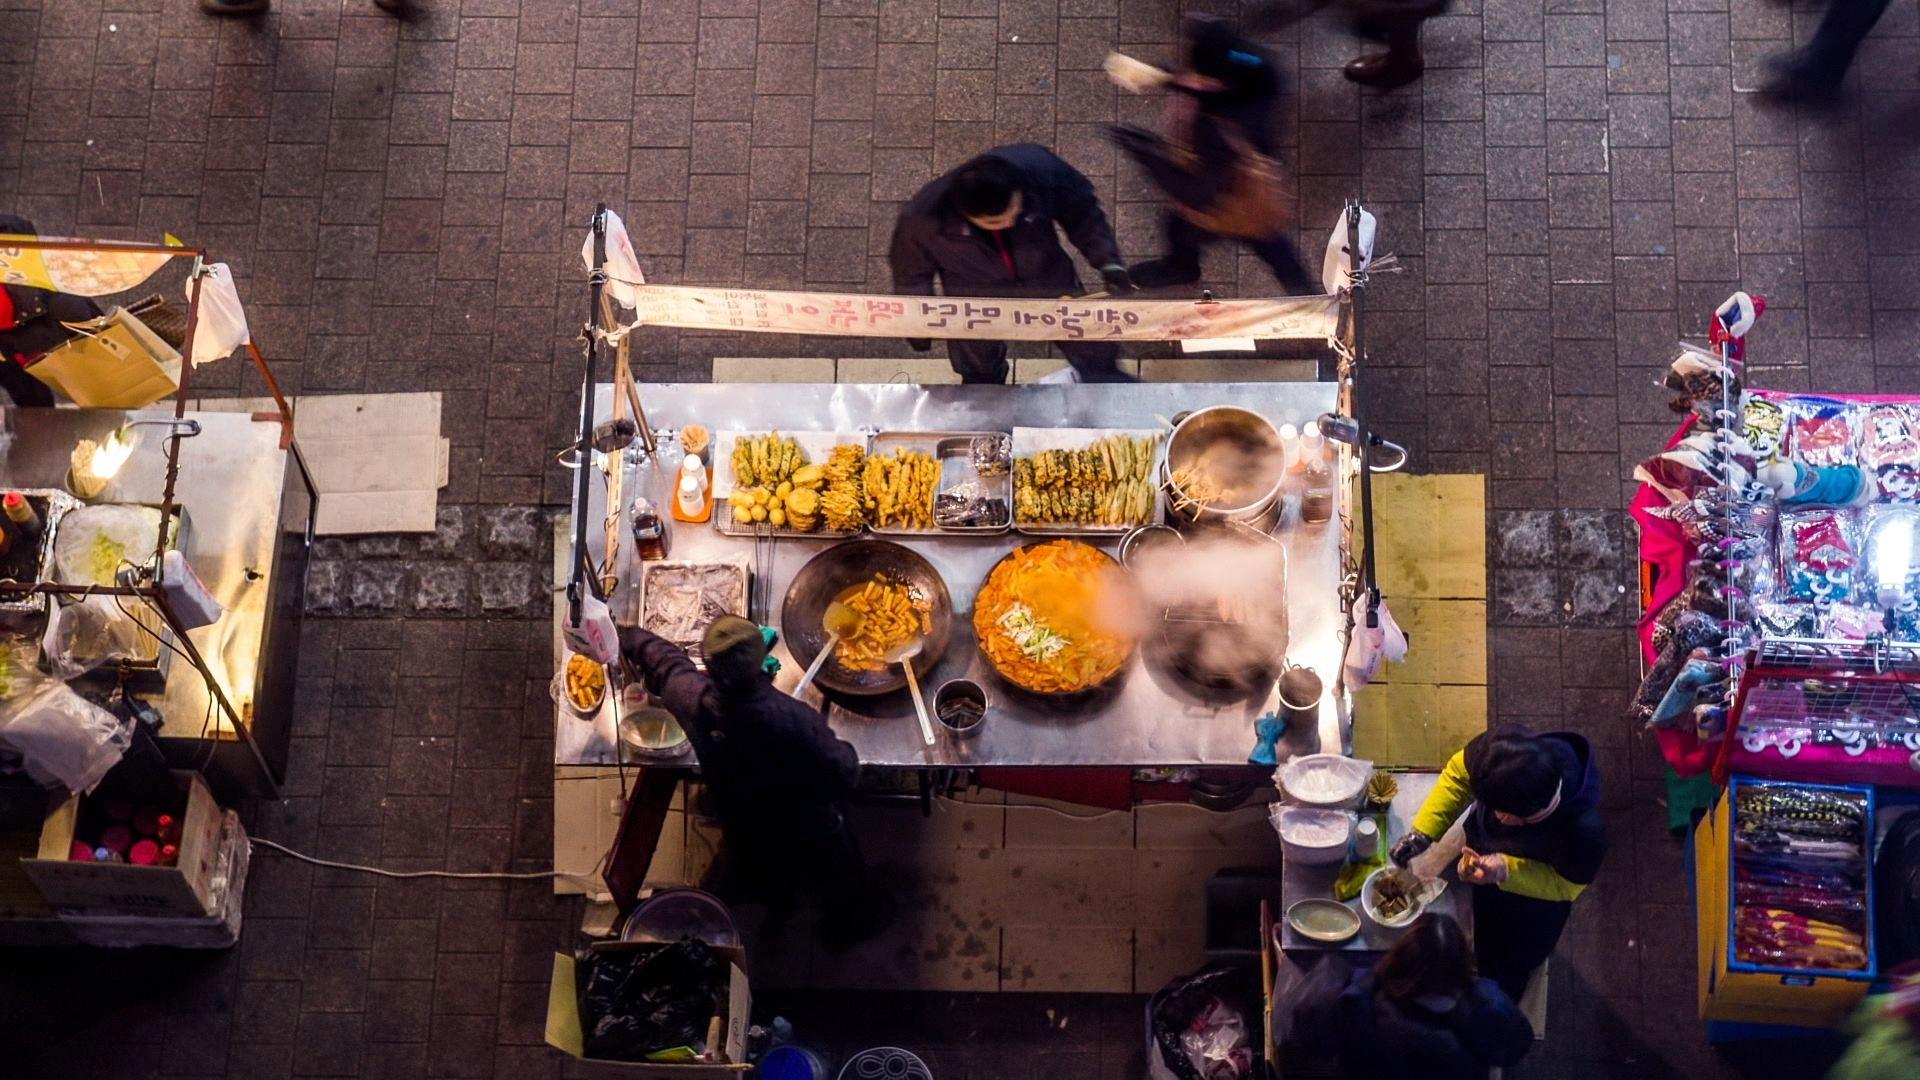 Our Favorite Street Foods from Around the World